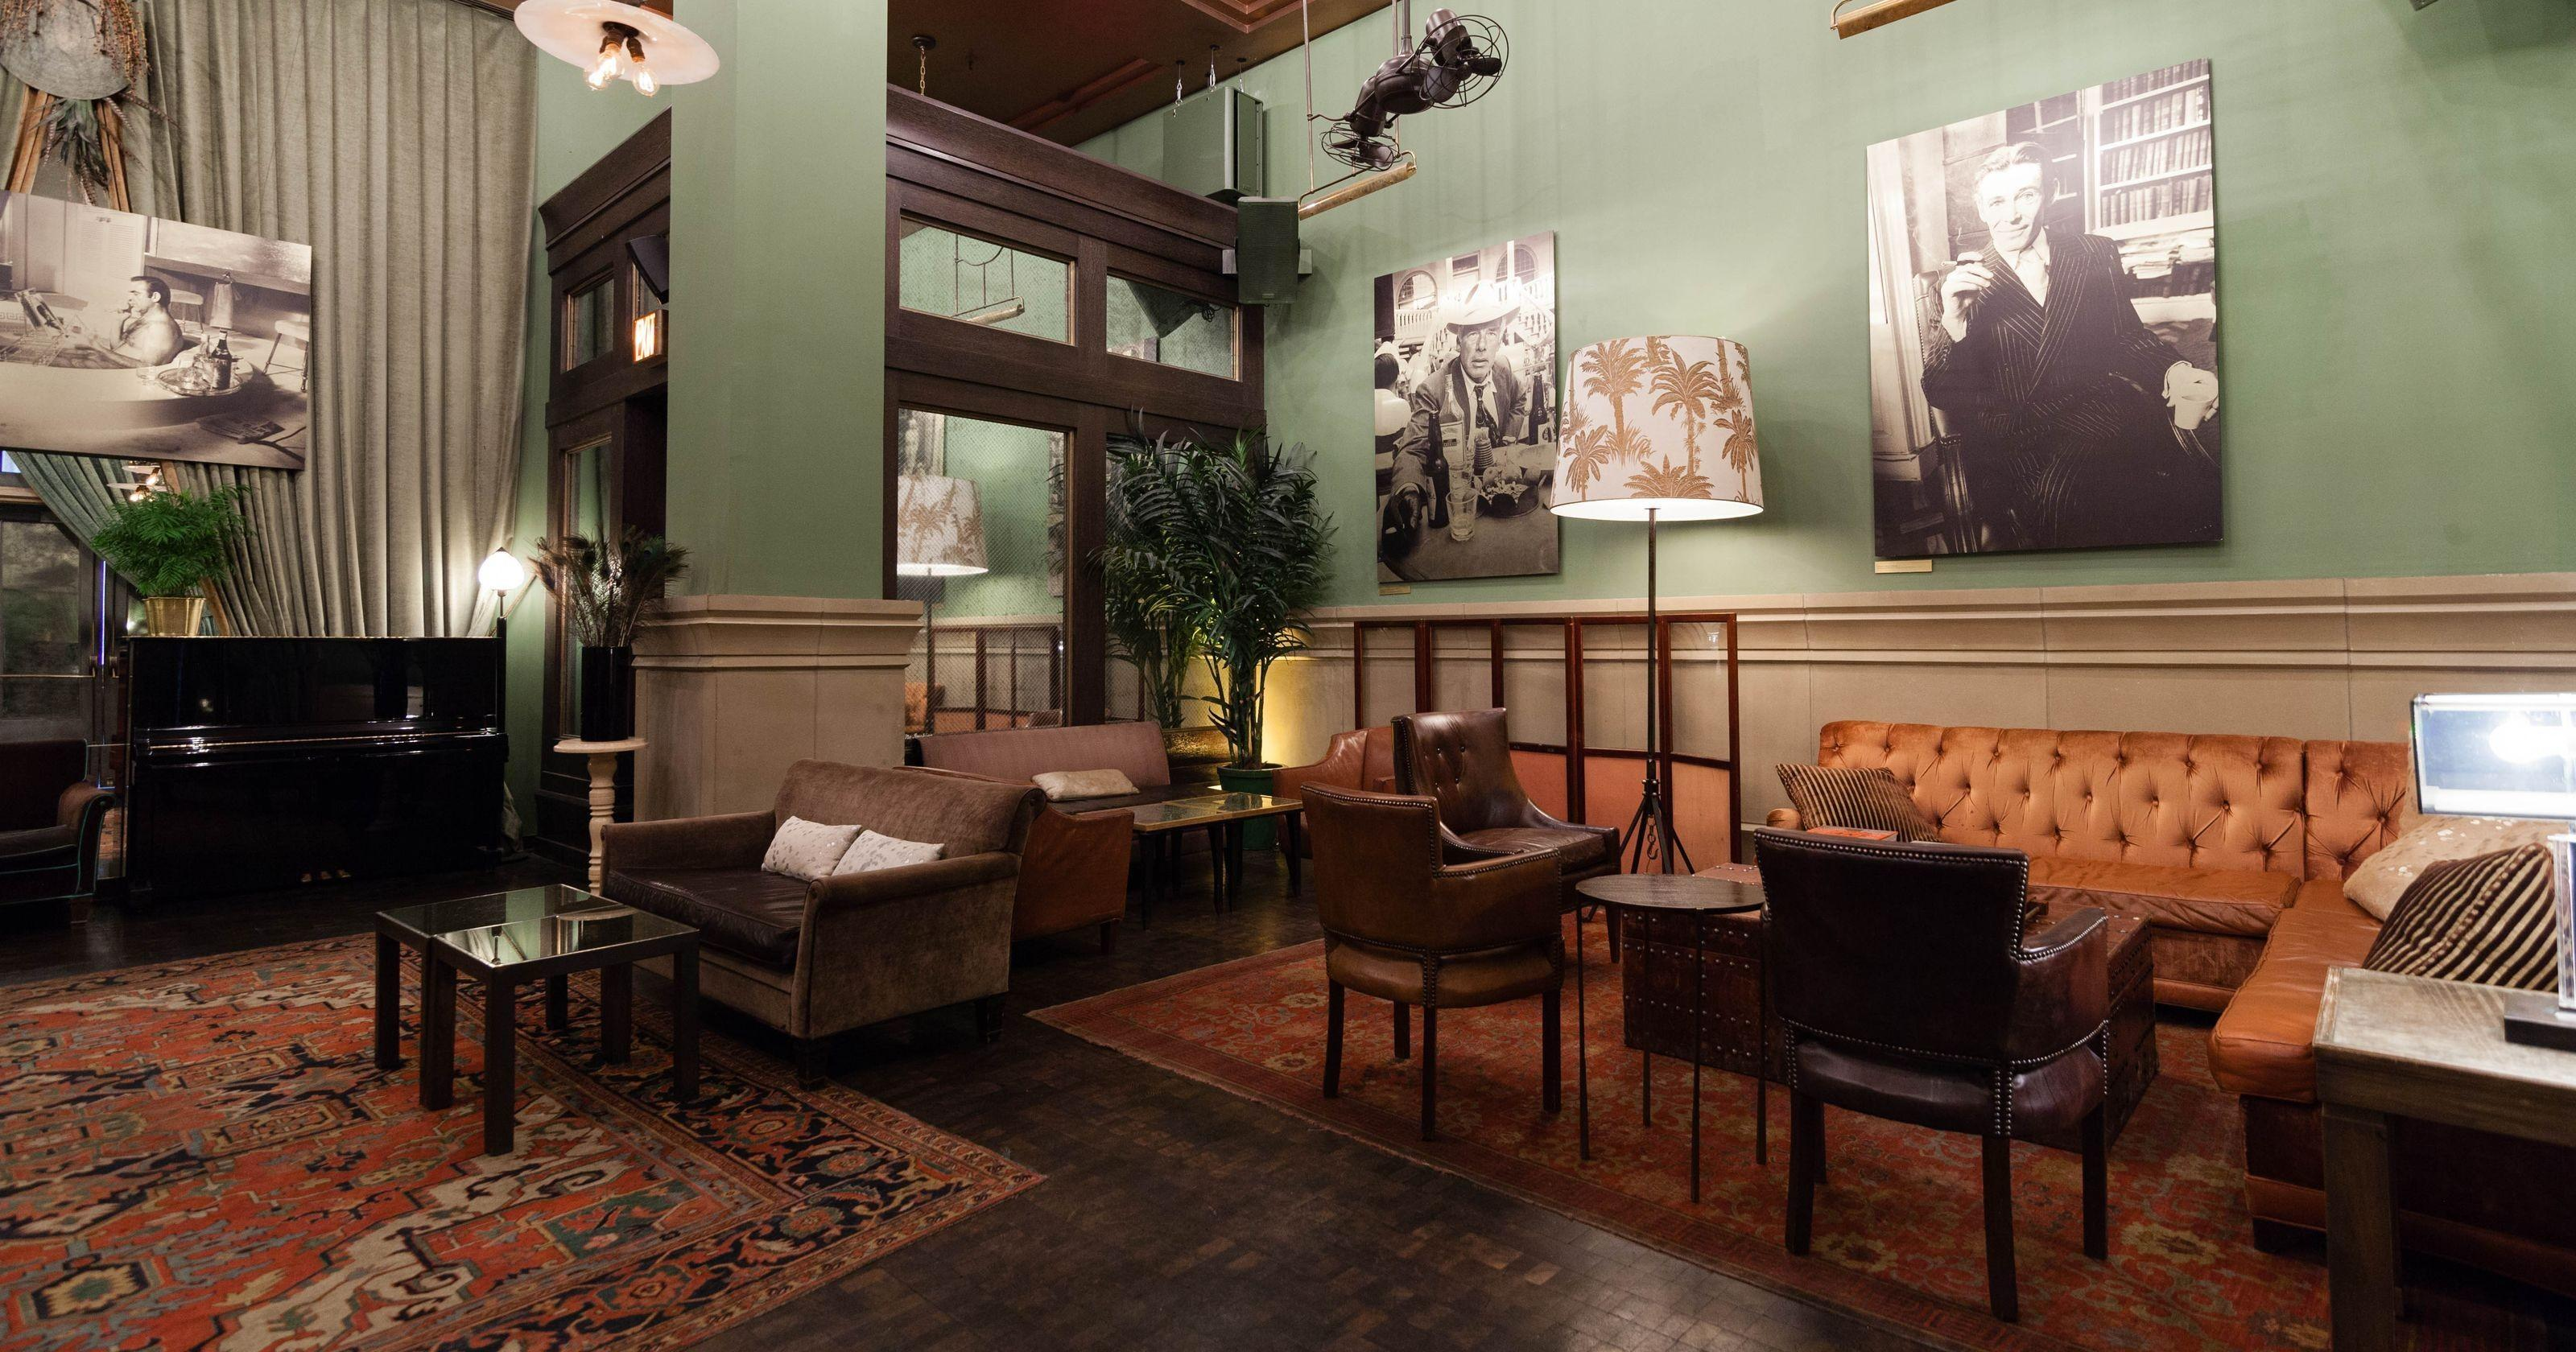 Nine Stylish Hotels New York Soho